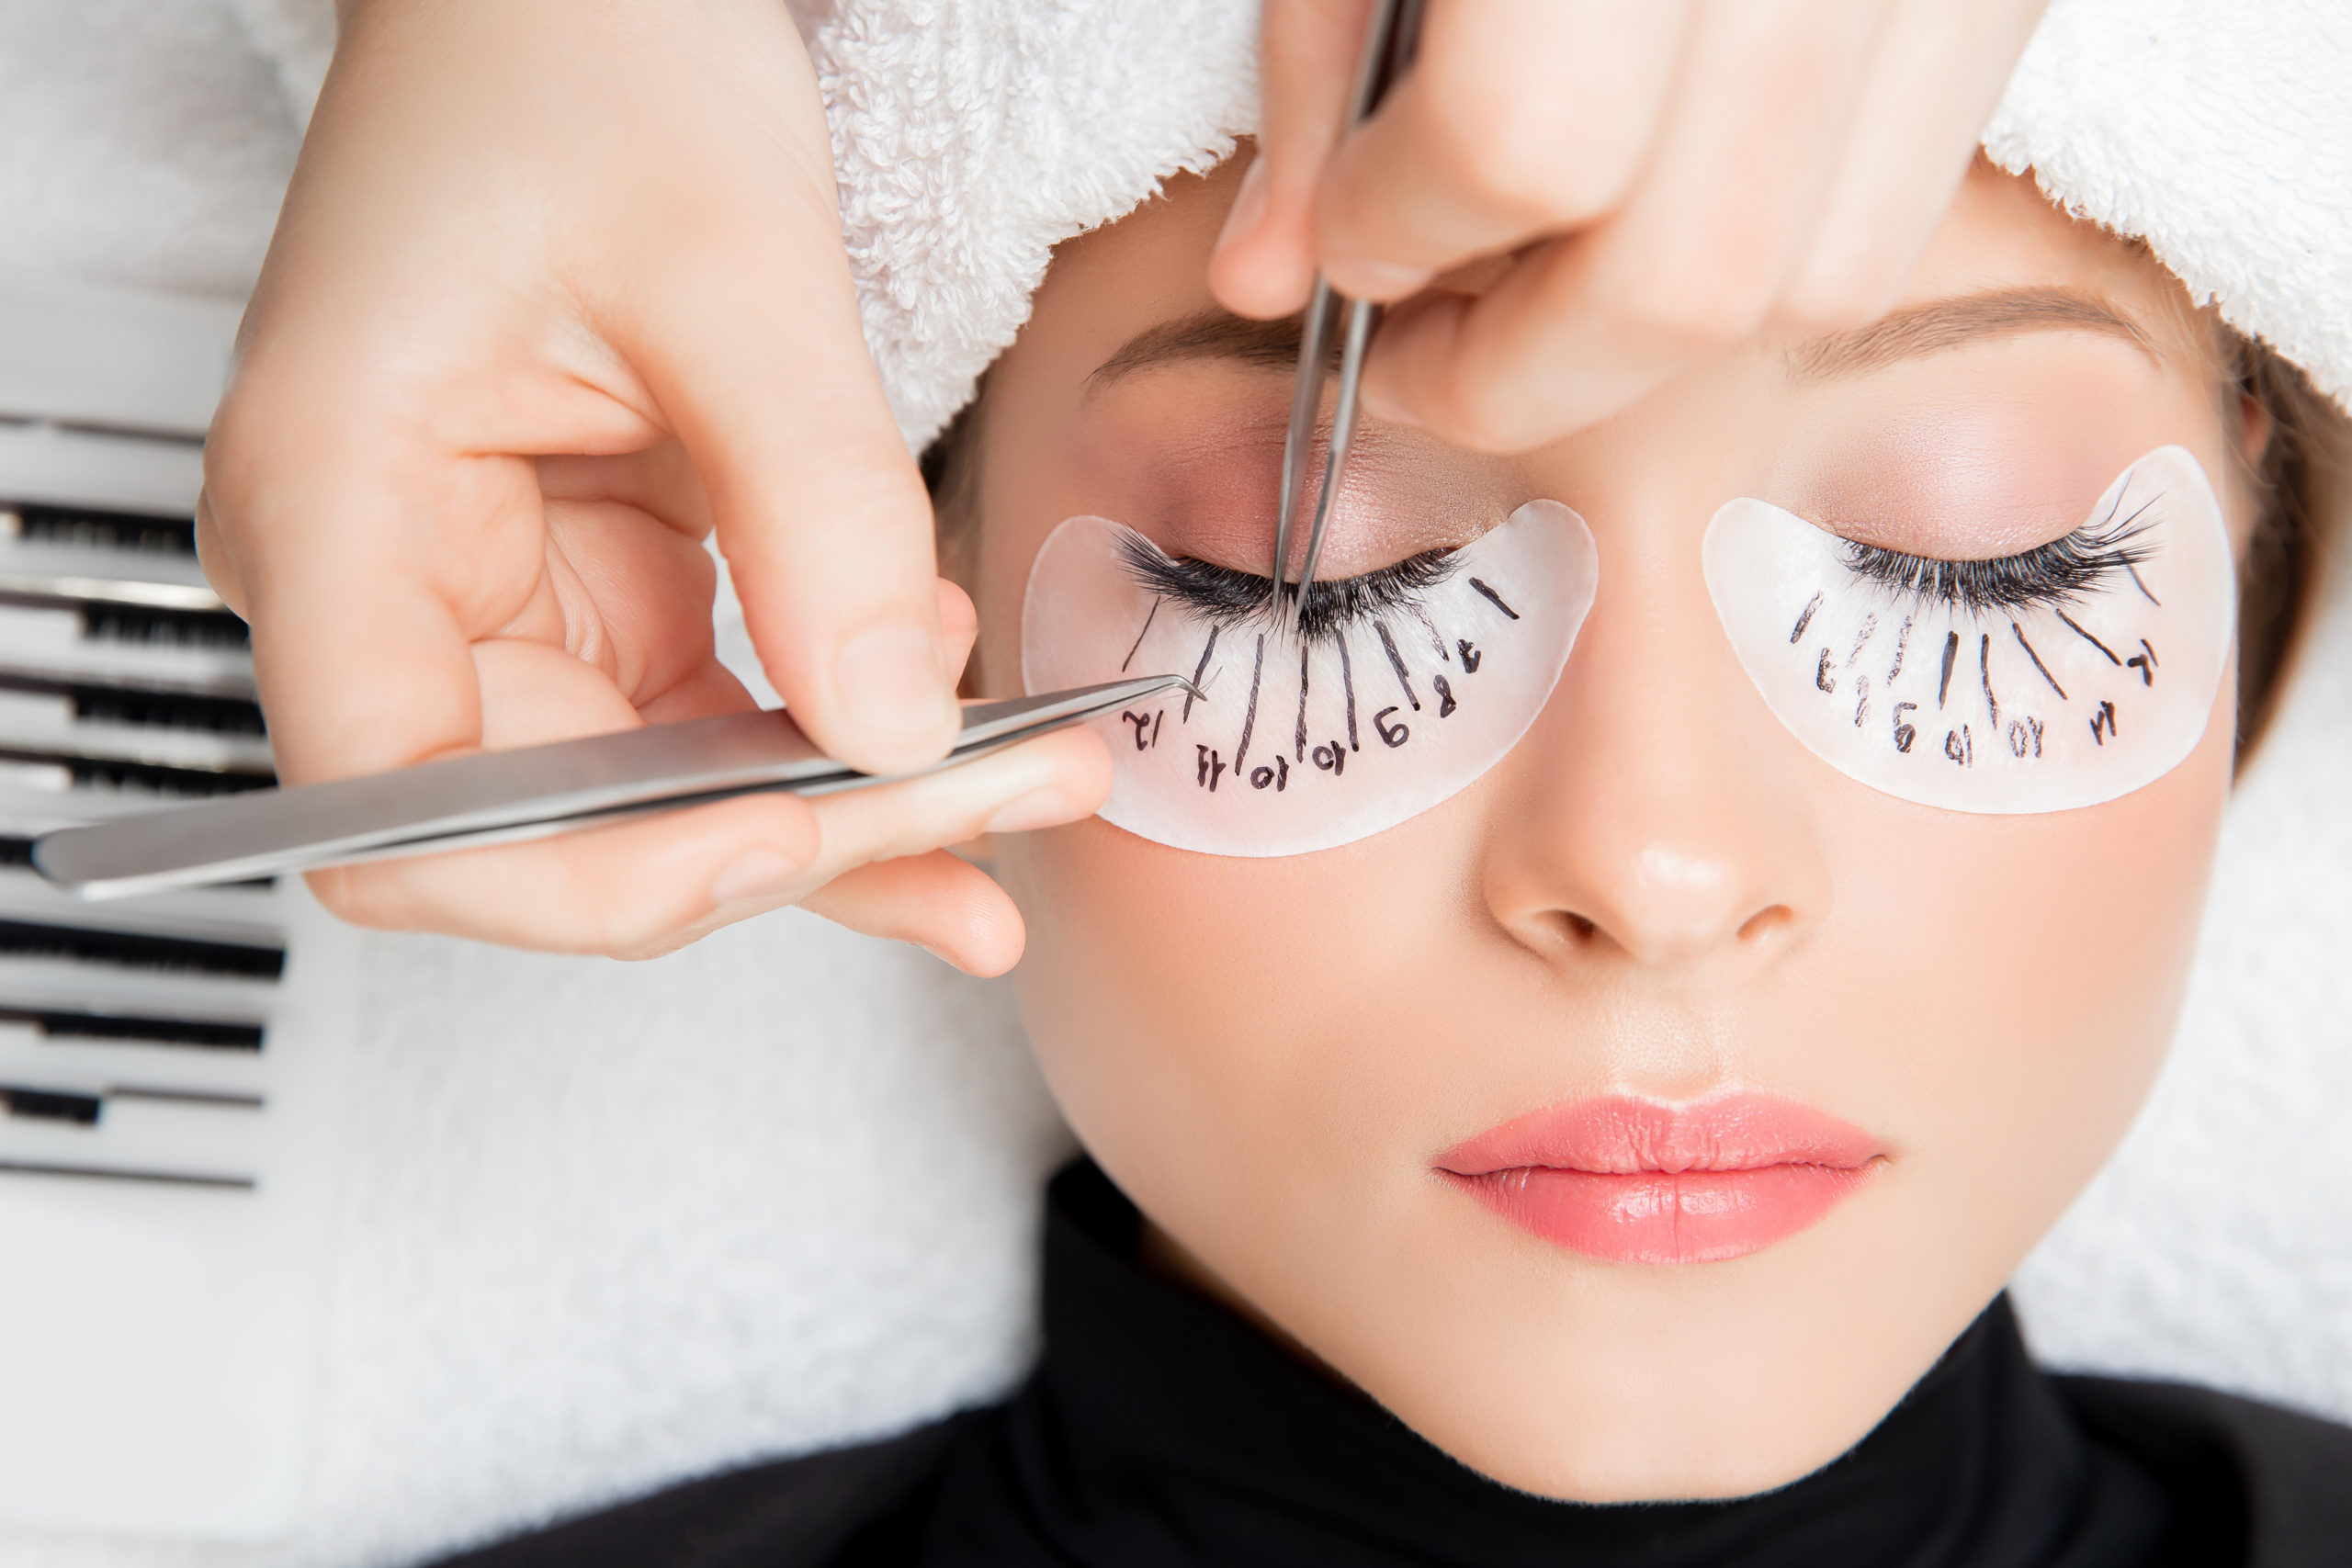 Eyelash extension procedure. Master tweezers fake long lashes beautiful female eyes.